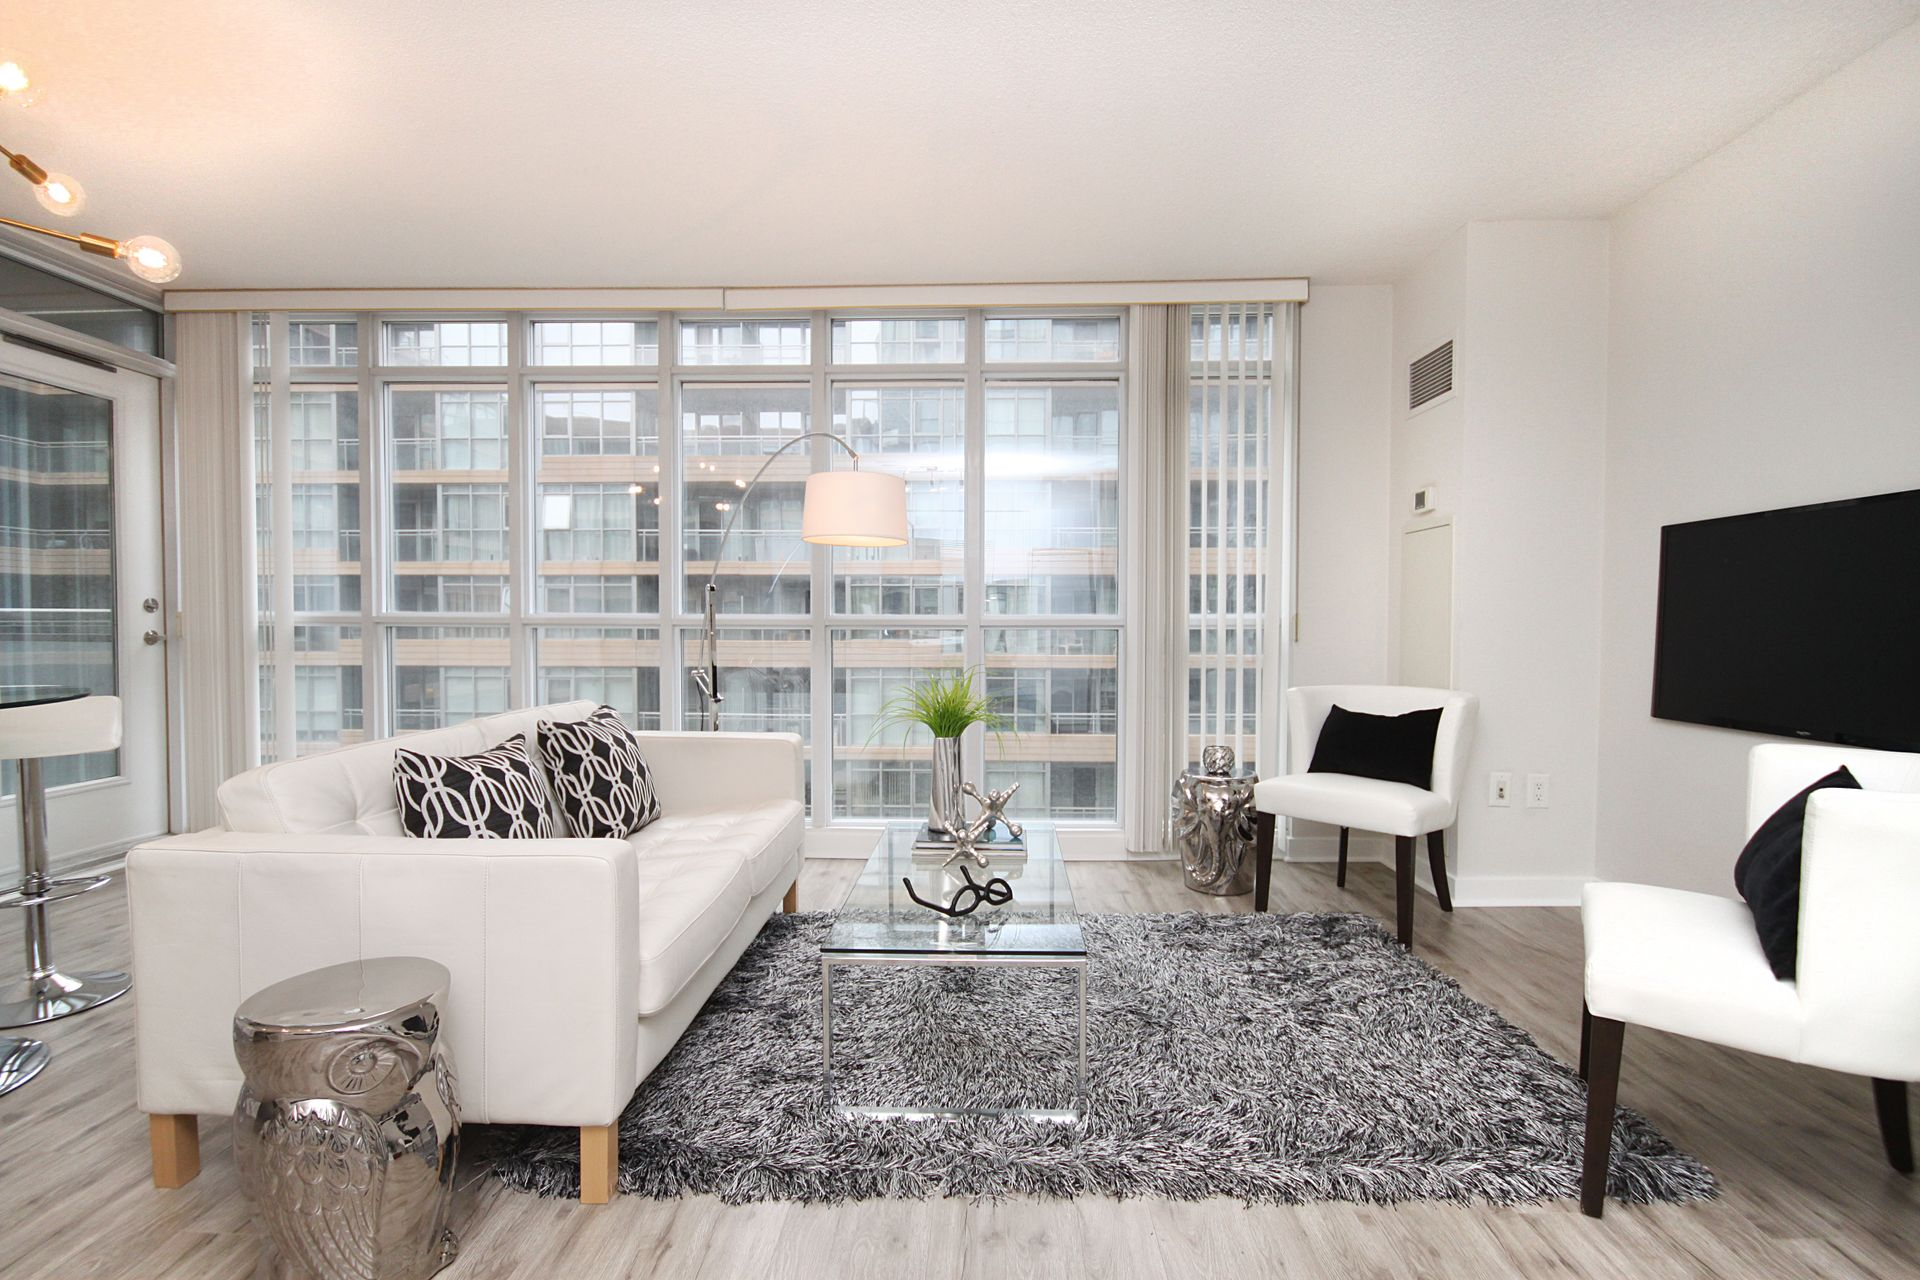 Living Room at 632 - 15 Iceboat Terrace, Waterfront Communities C1, Toronto